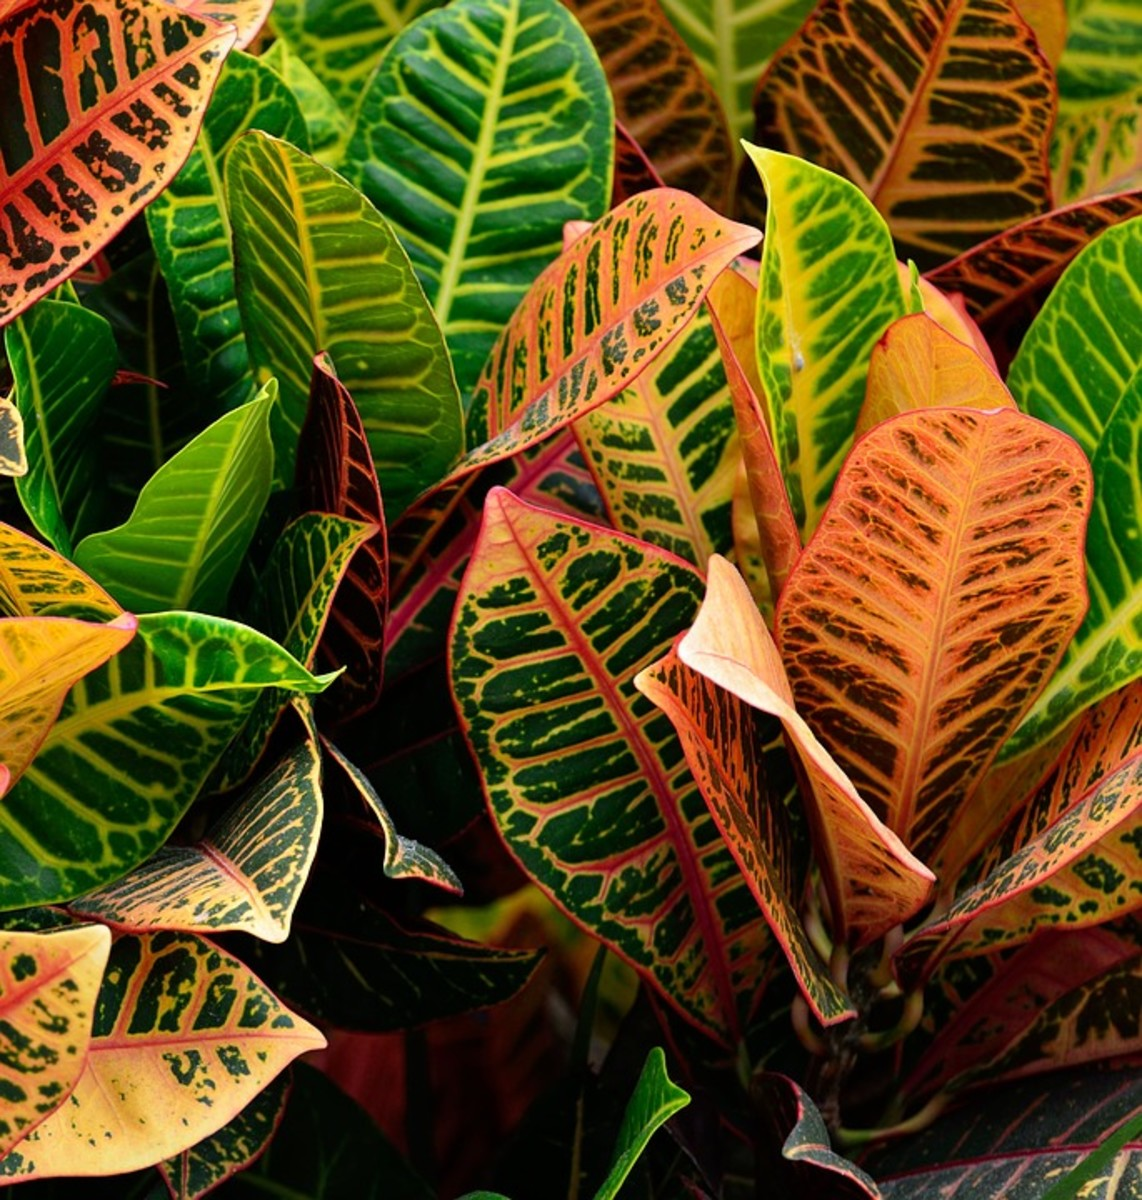 The croton plant can be used to create a powerful laxative.